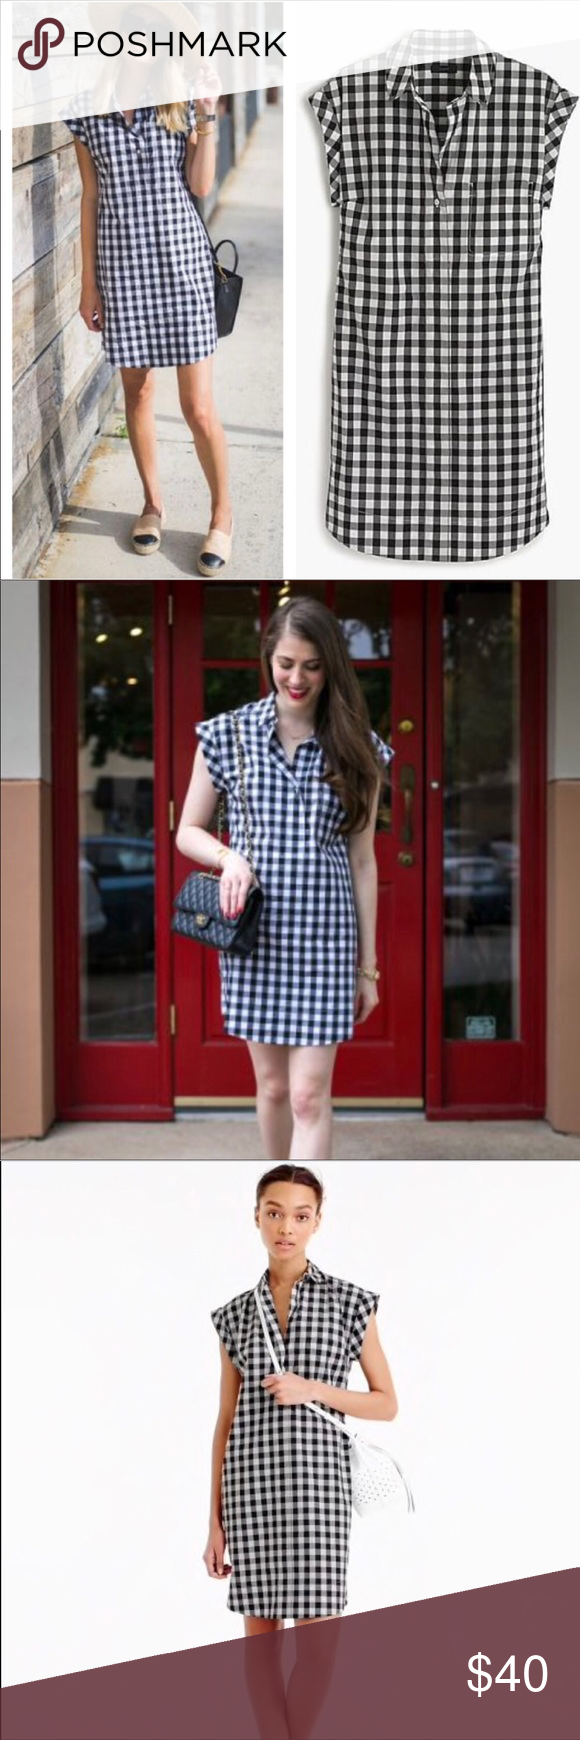 ee281632452 J. Crew Classic Short-sleeve Shirtdress in Gingham A classic shirtdress  made from crisp cotton in our favorite pattern of the season  gingham.